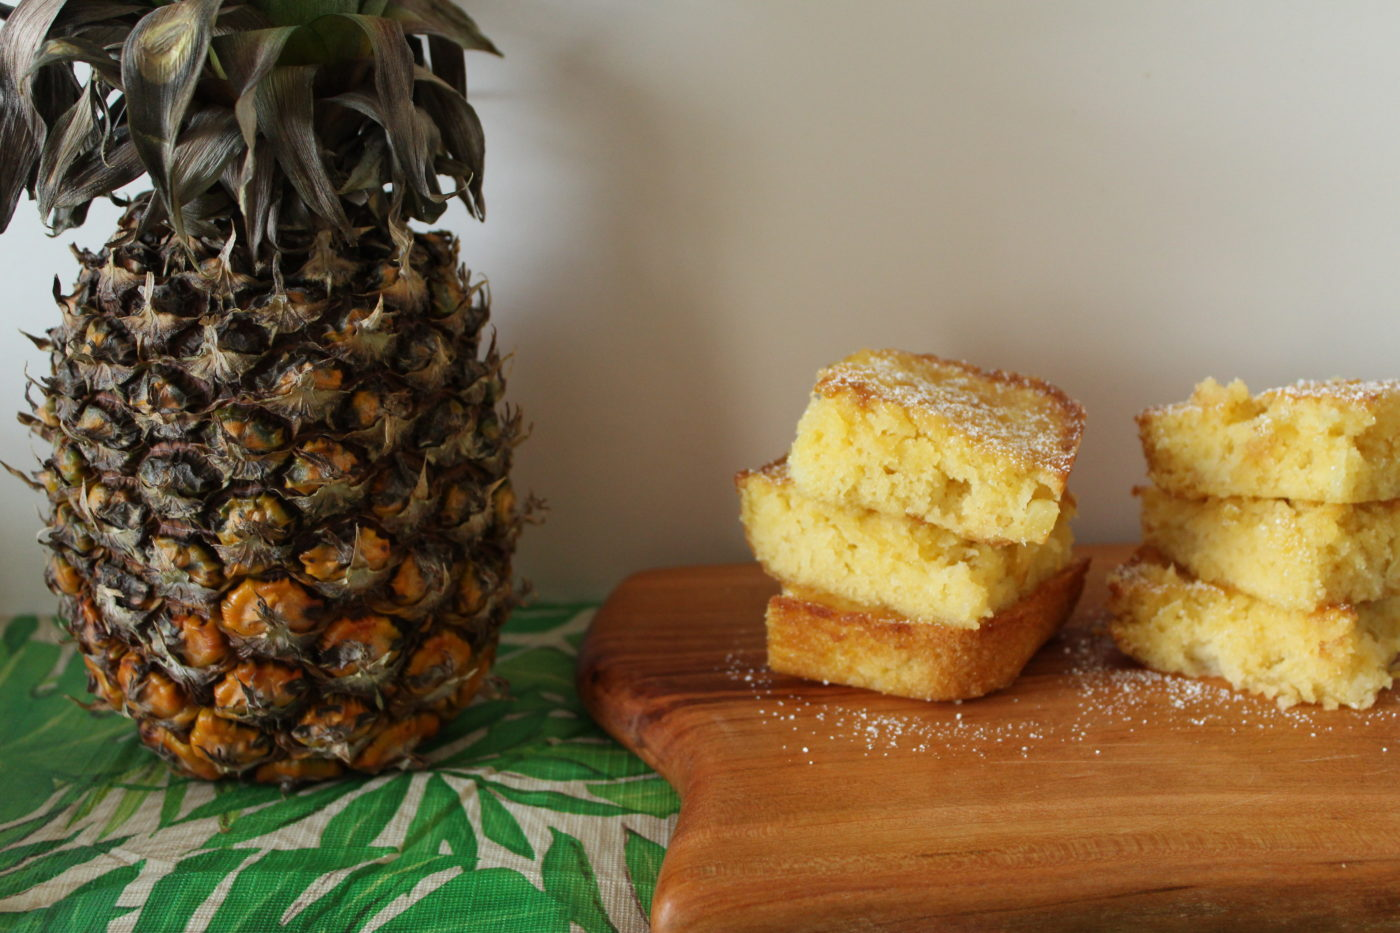 Pineapple bars can be enjoyed on their own or with a scoop of ice cream or with a few fresh berries.